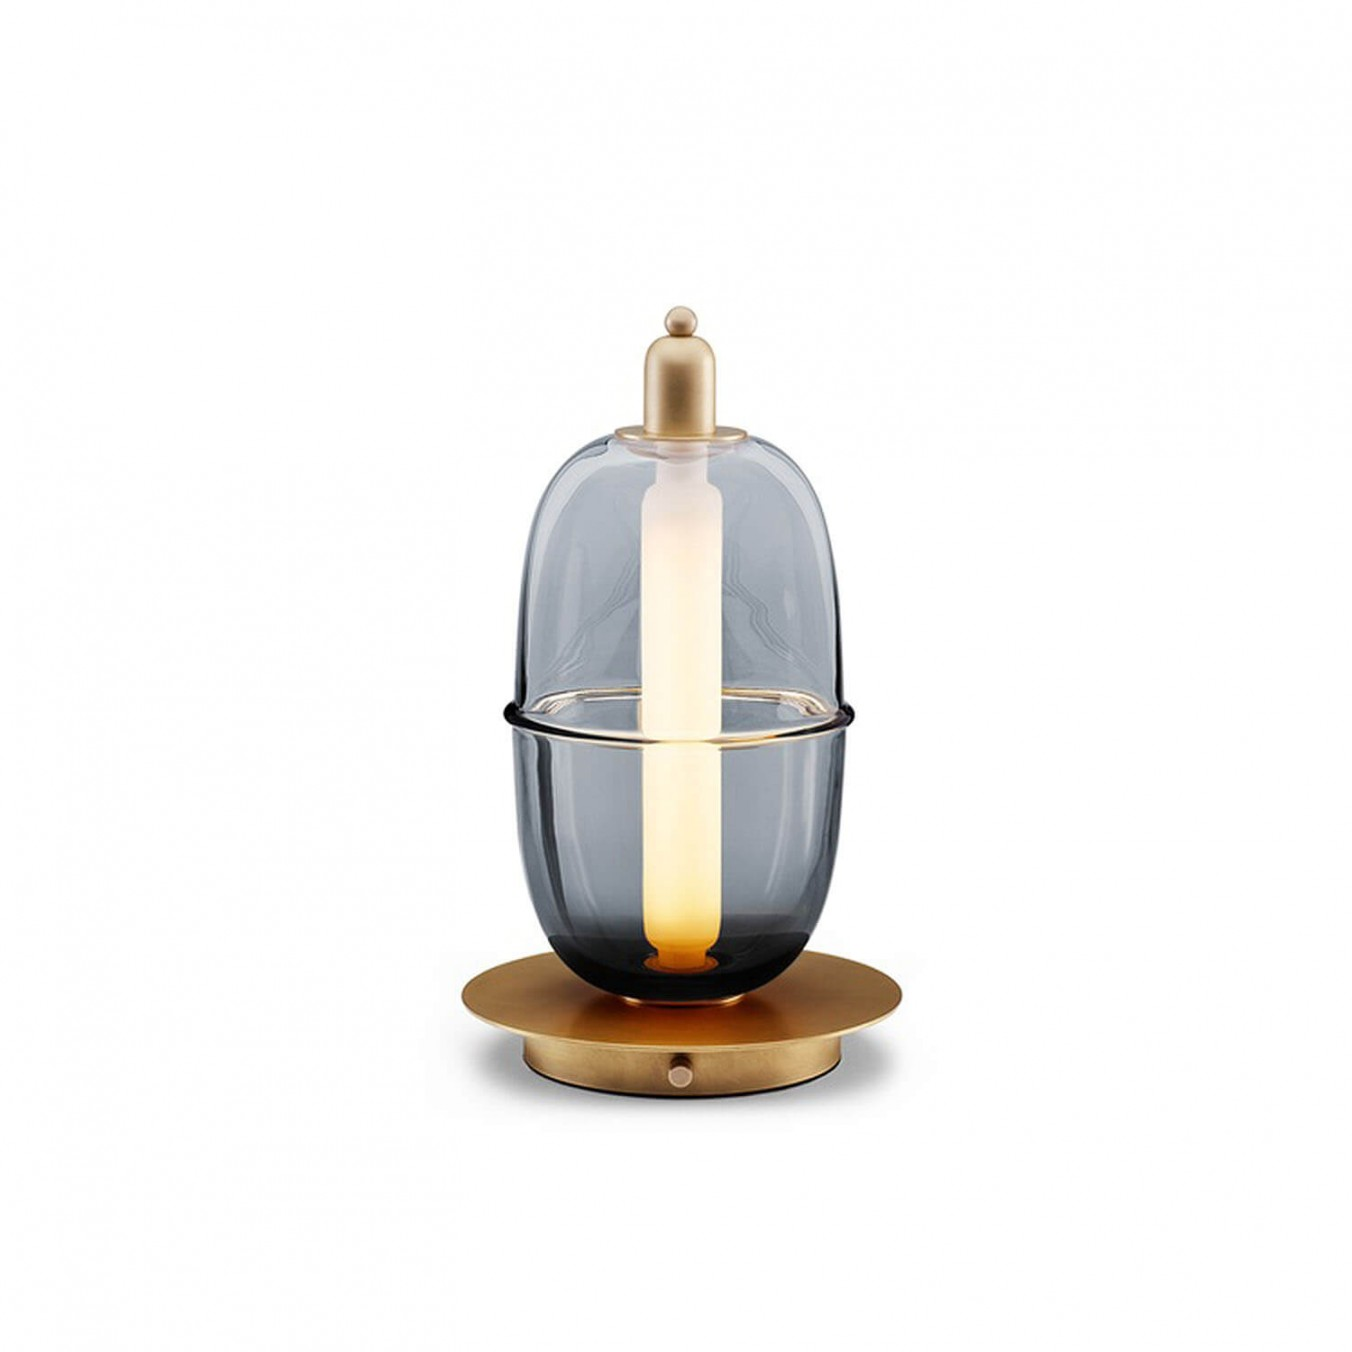 Moirai Table Lamp Version B